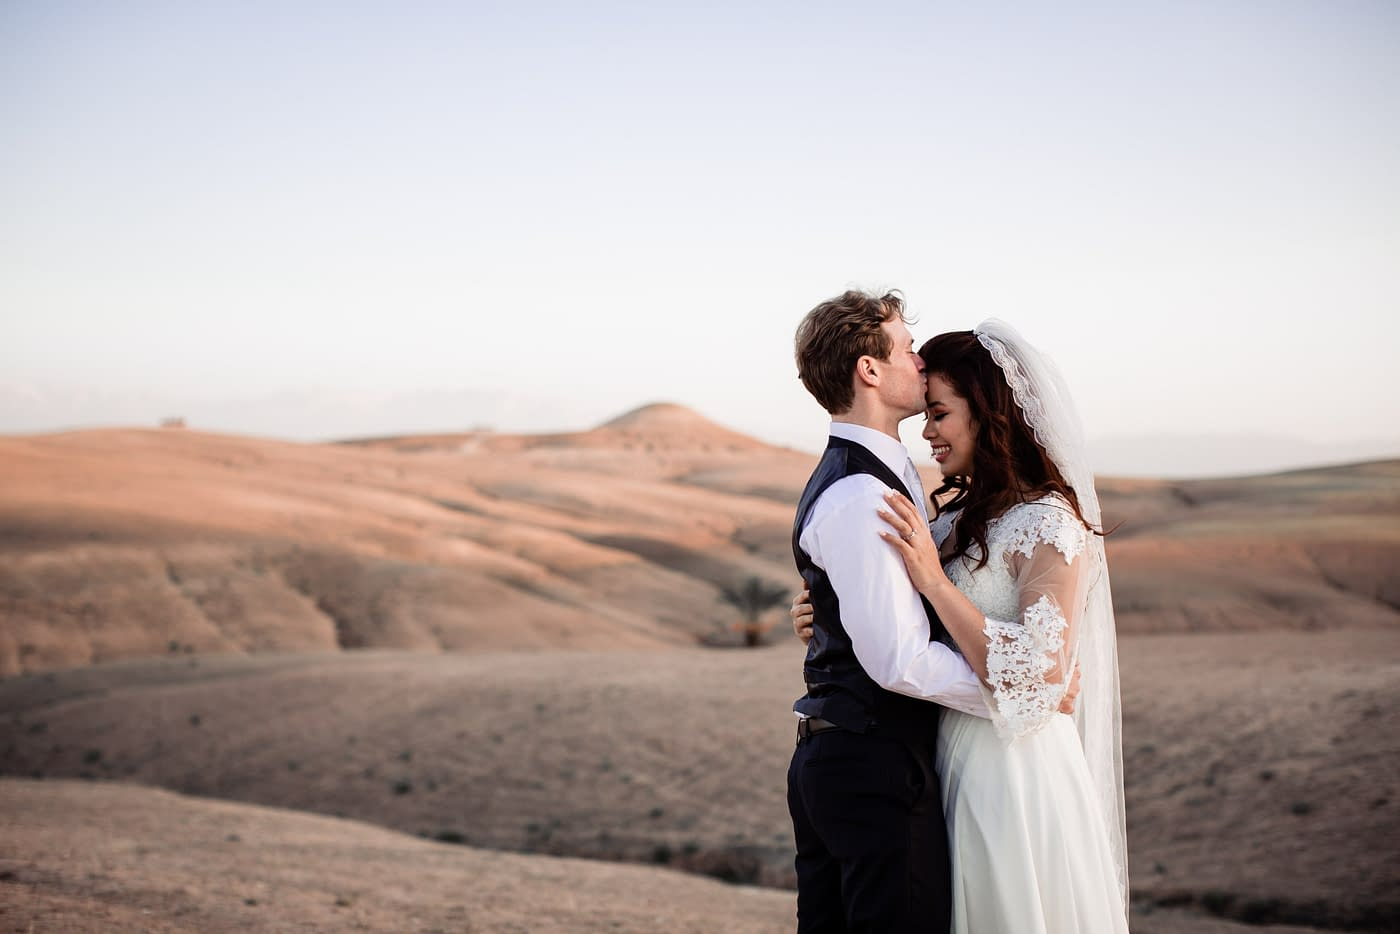 Wedding photos in Agafay desert in Marrakech